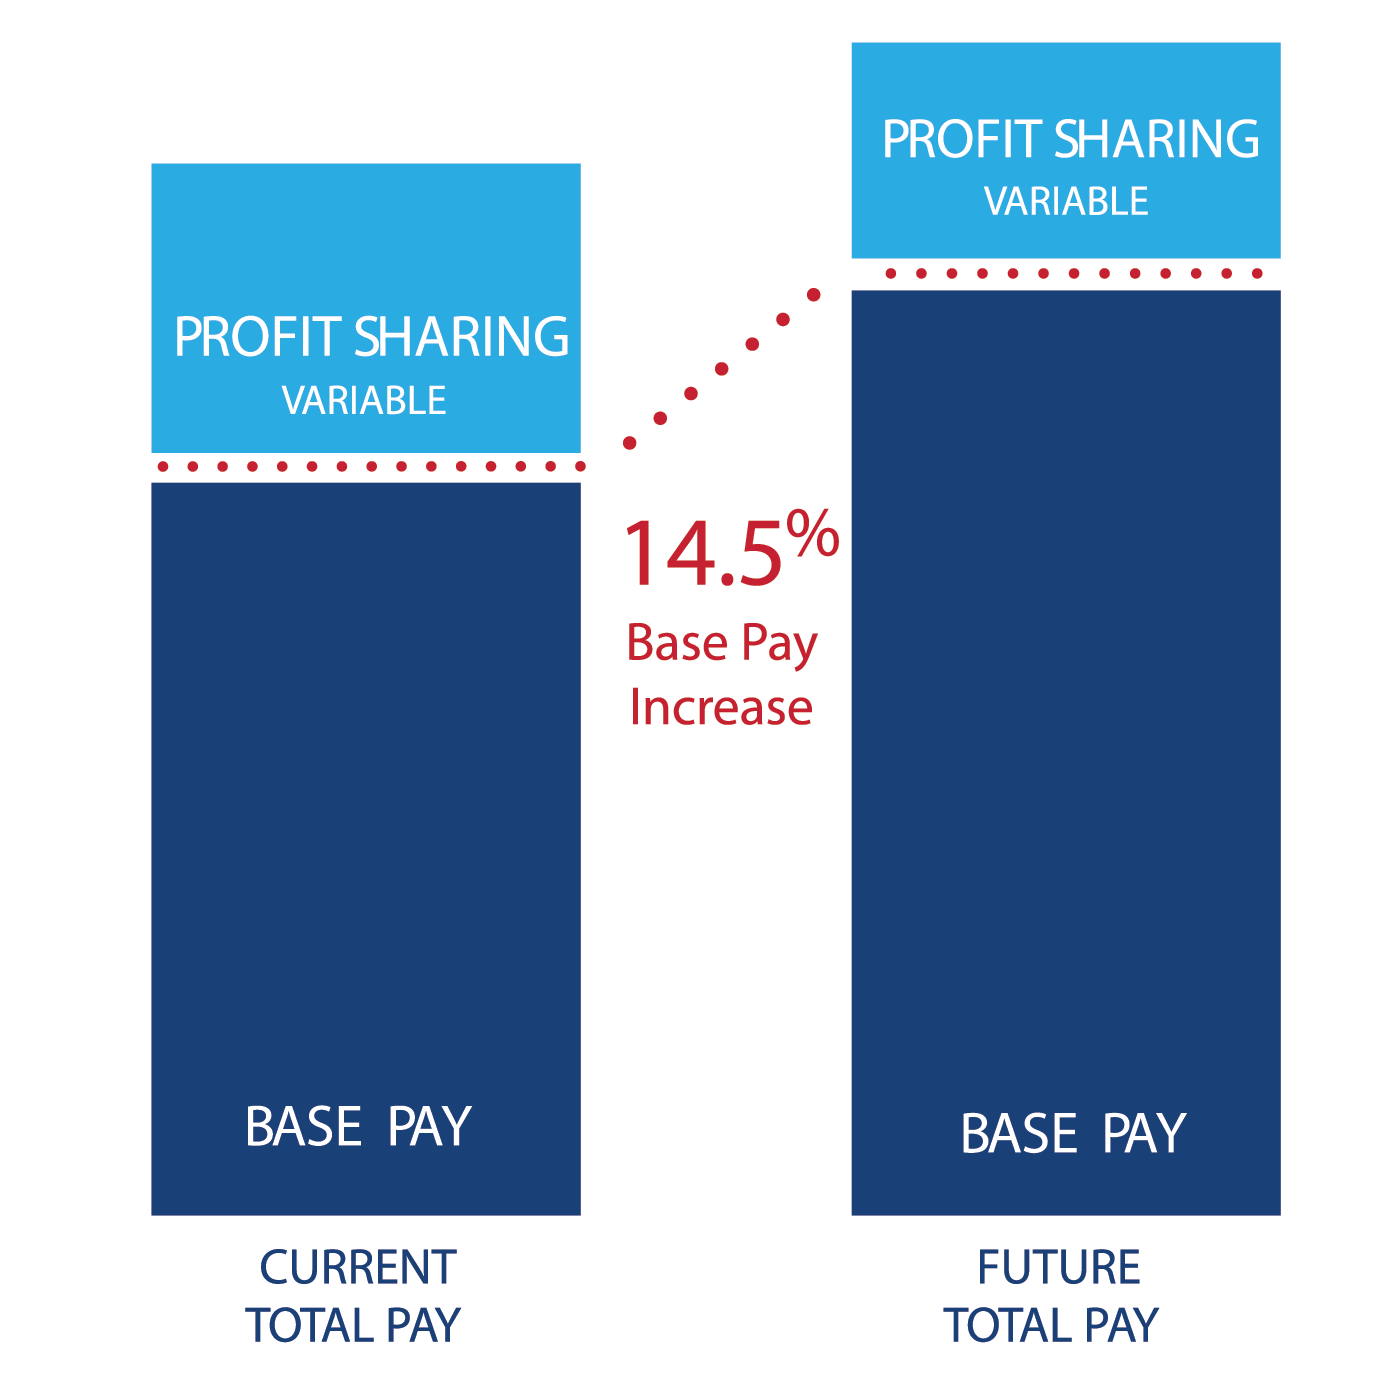 Base Pay Graphs for 2015